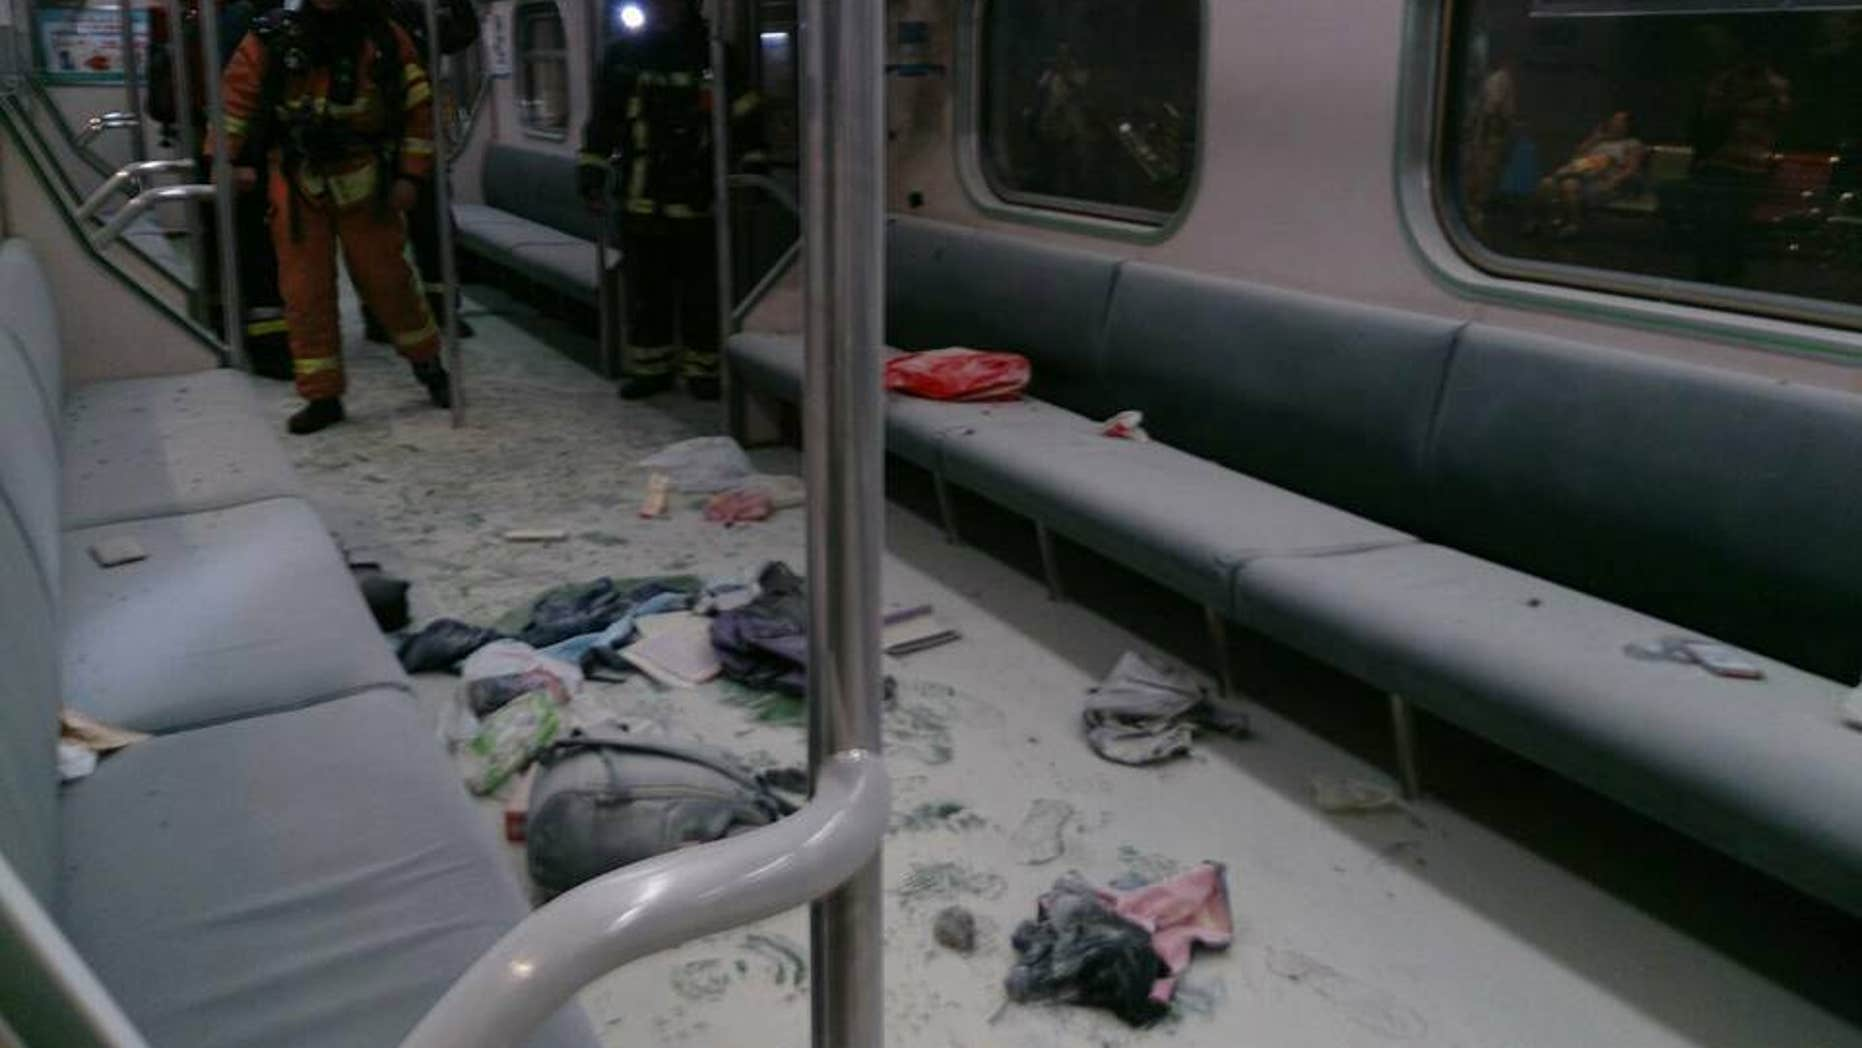 July 7, 2016: An explosion on a train in Taipei is believed to have been caused by pre-made explosives, according to a local media report.